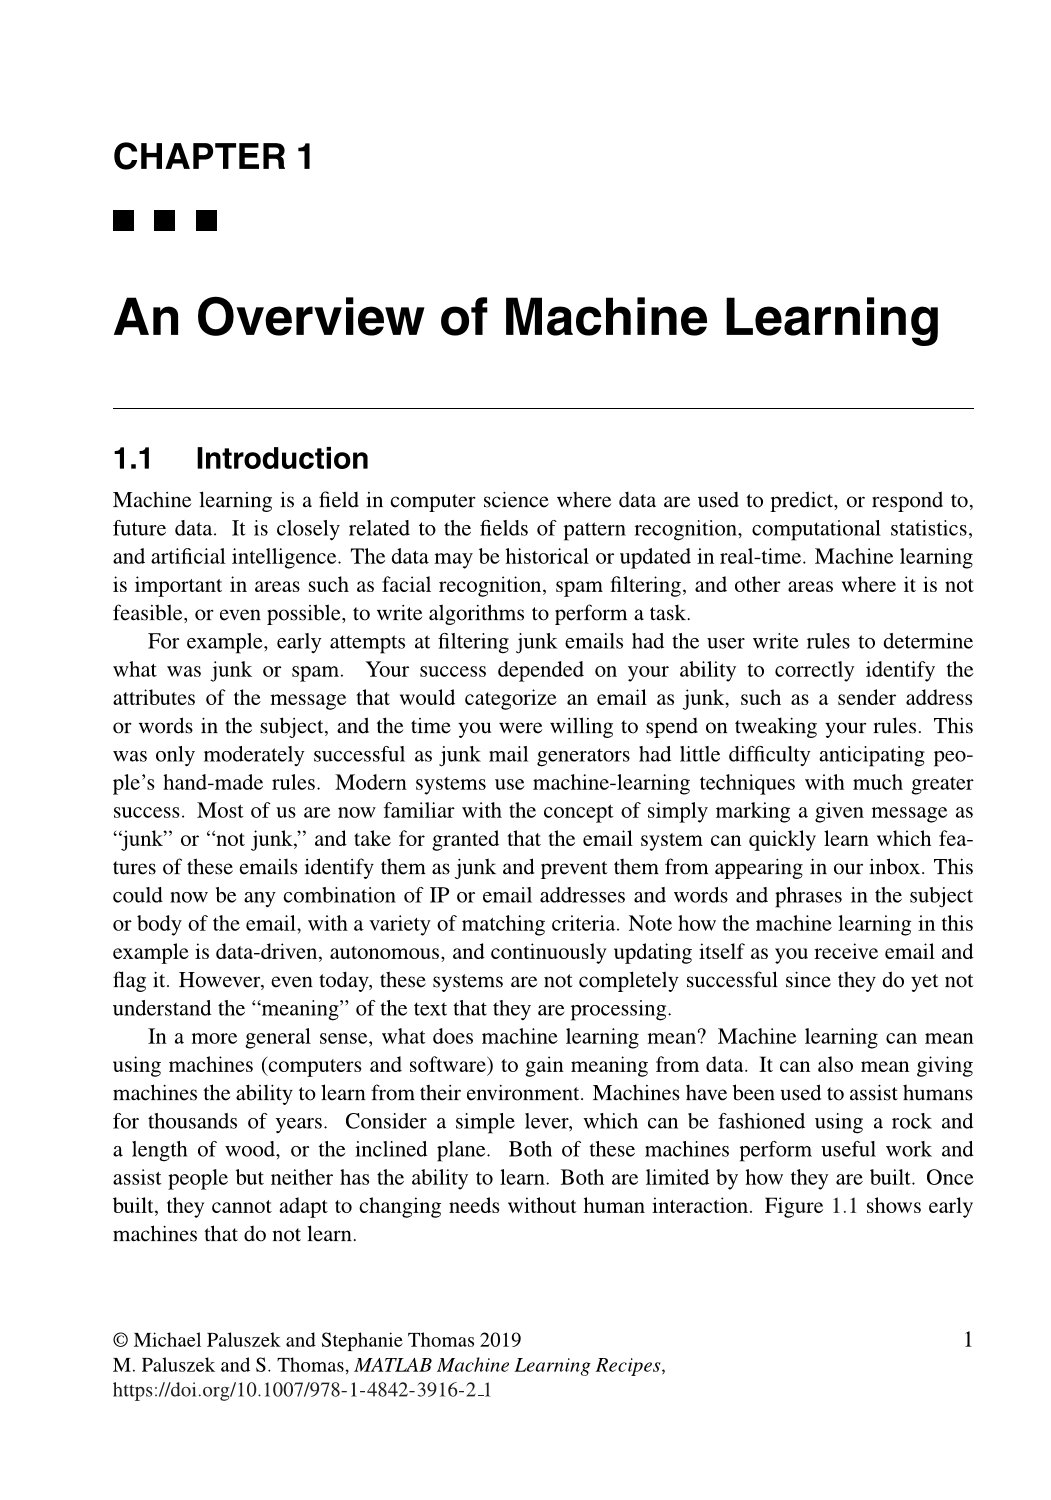 MATLAB Machine Learning Recipes: A Problem-Solution Approach, 2/e (Paperback)-preview-5